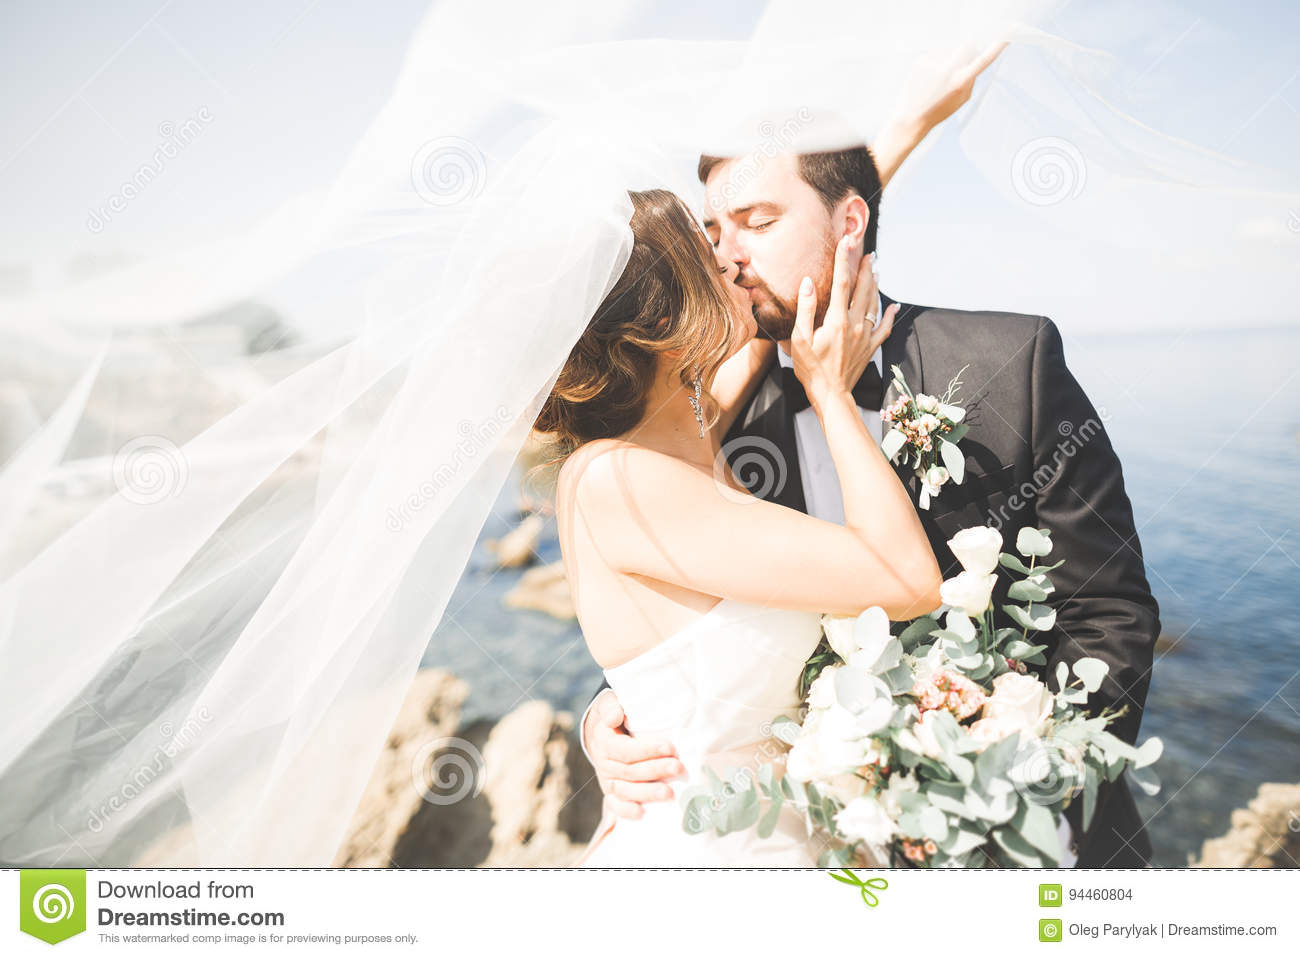 Happy And Romantic Scene Of Just Married Young Wedding Couple Posing On Beautiful Beach Stock Photo Image Of Outdoors Nature 94460804